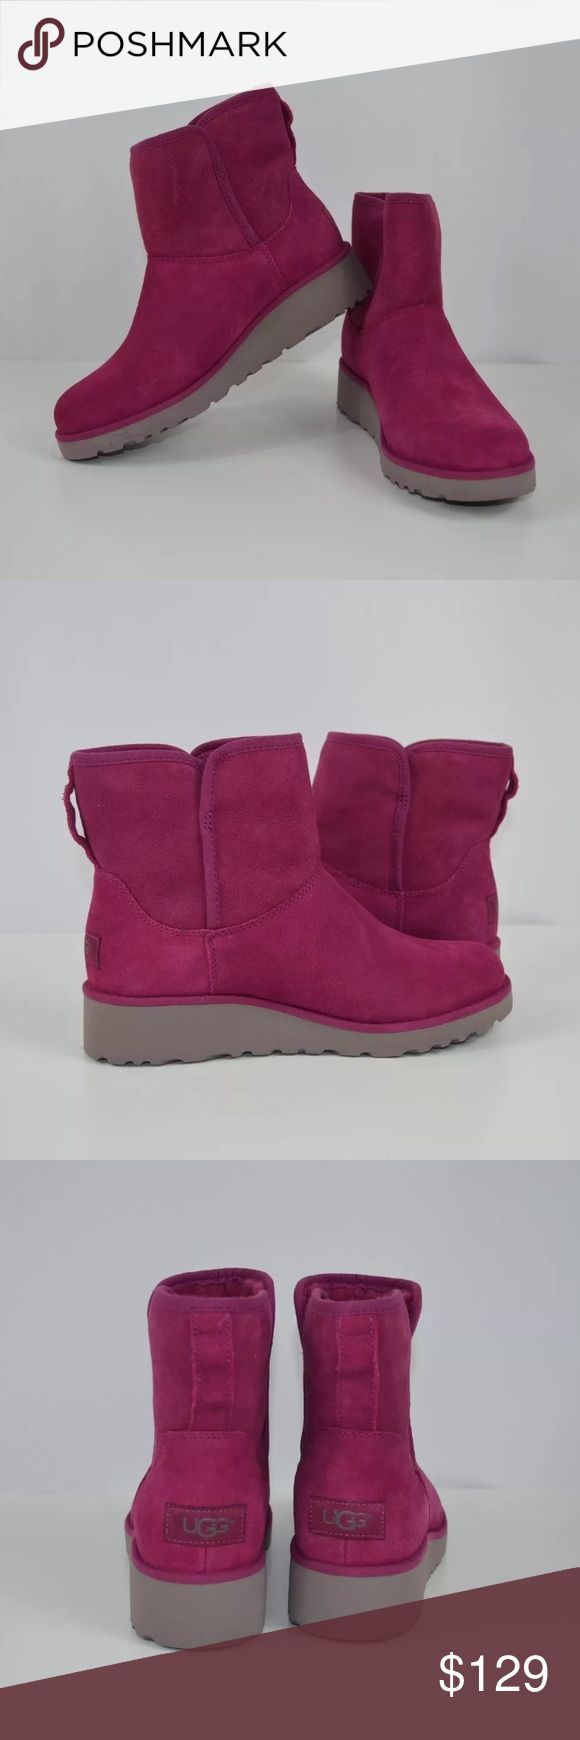 New UGG Kristin shearling boots size 6 New with box but no top. Part of the Classic Slim™ Collection, this evolution of the Classic Mini features premium materials, expert craftsmanship, and signature comfort in a slimmer silhouette. Rendered in plush materials that have been pretreated to repel water and stains, the Kristin also features added arch support, a small wedge, and the innovative Treadlite by UGG™ outsole for incredibly lightweight traction, cushioning, durability, and…